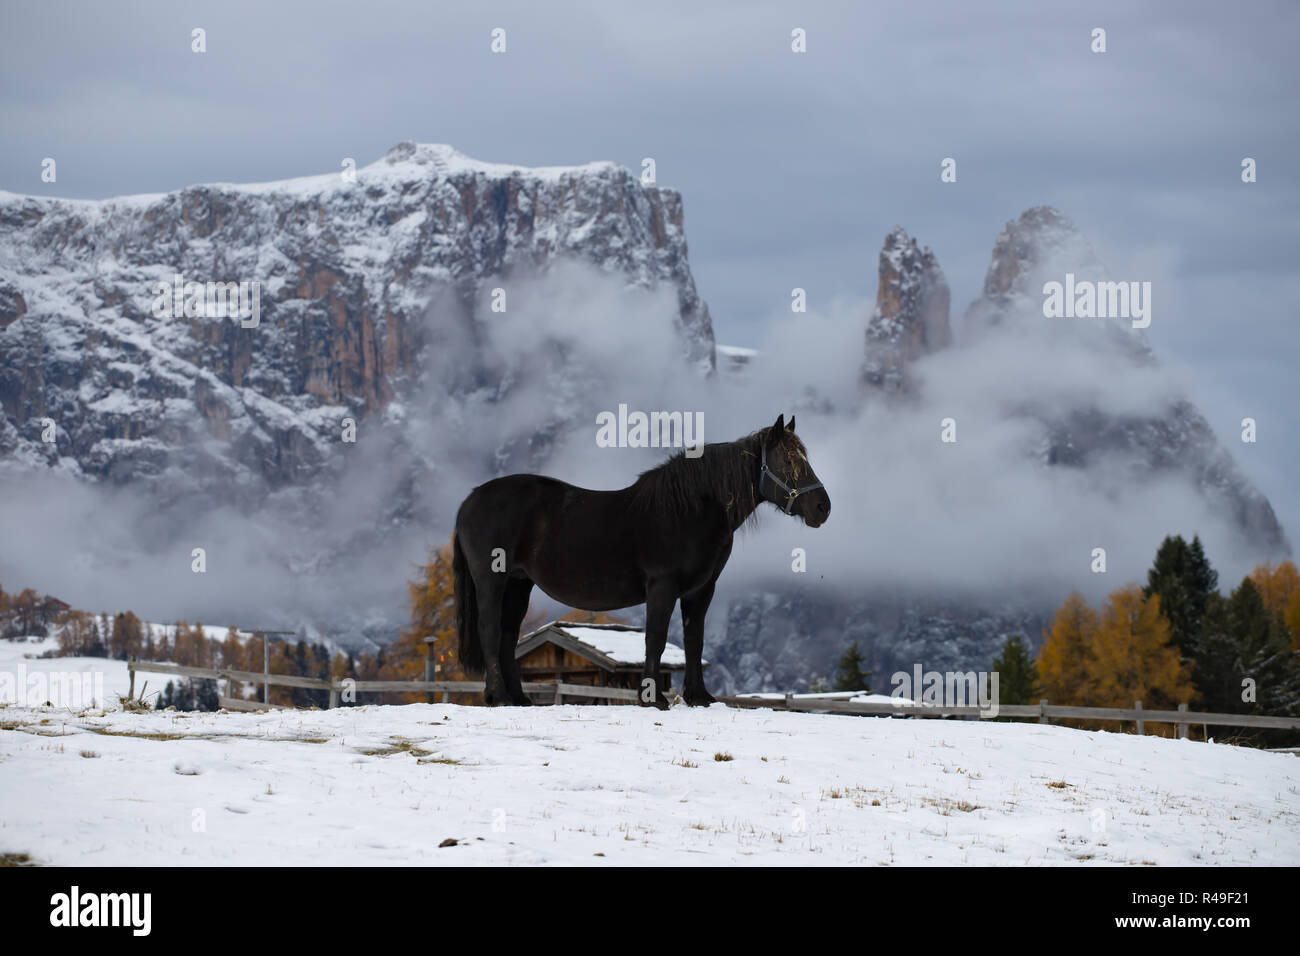 Horses on the winter meadow and Schlern (Sciliar) mountain peaks on background. Dolomite Alps, Seiser Alm (Alpe di Siusi), South Tyrol, Italy. Stock Photo